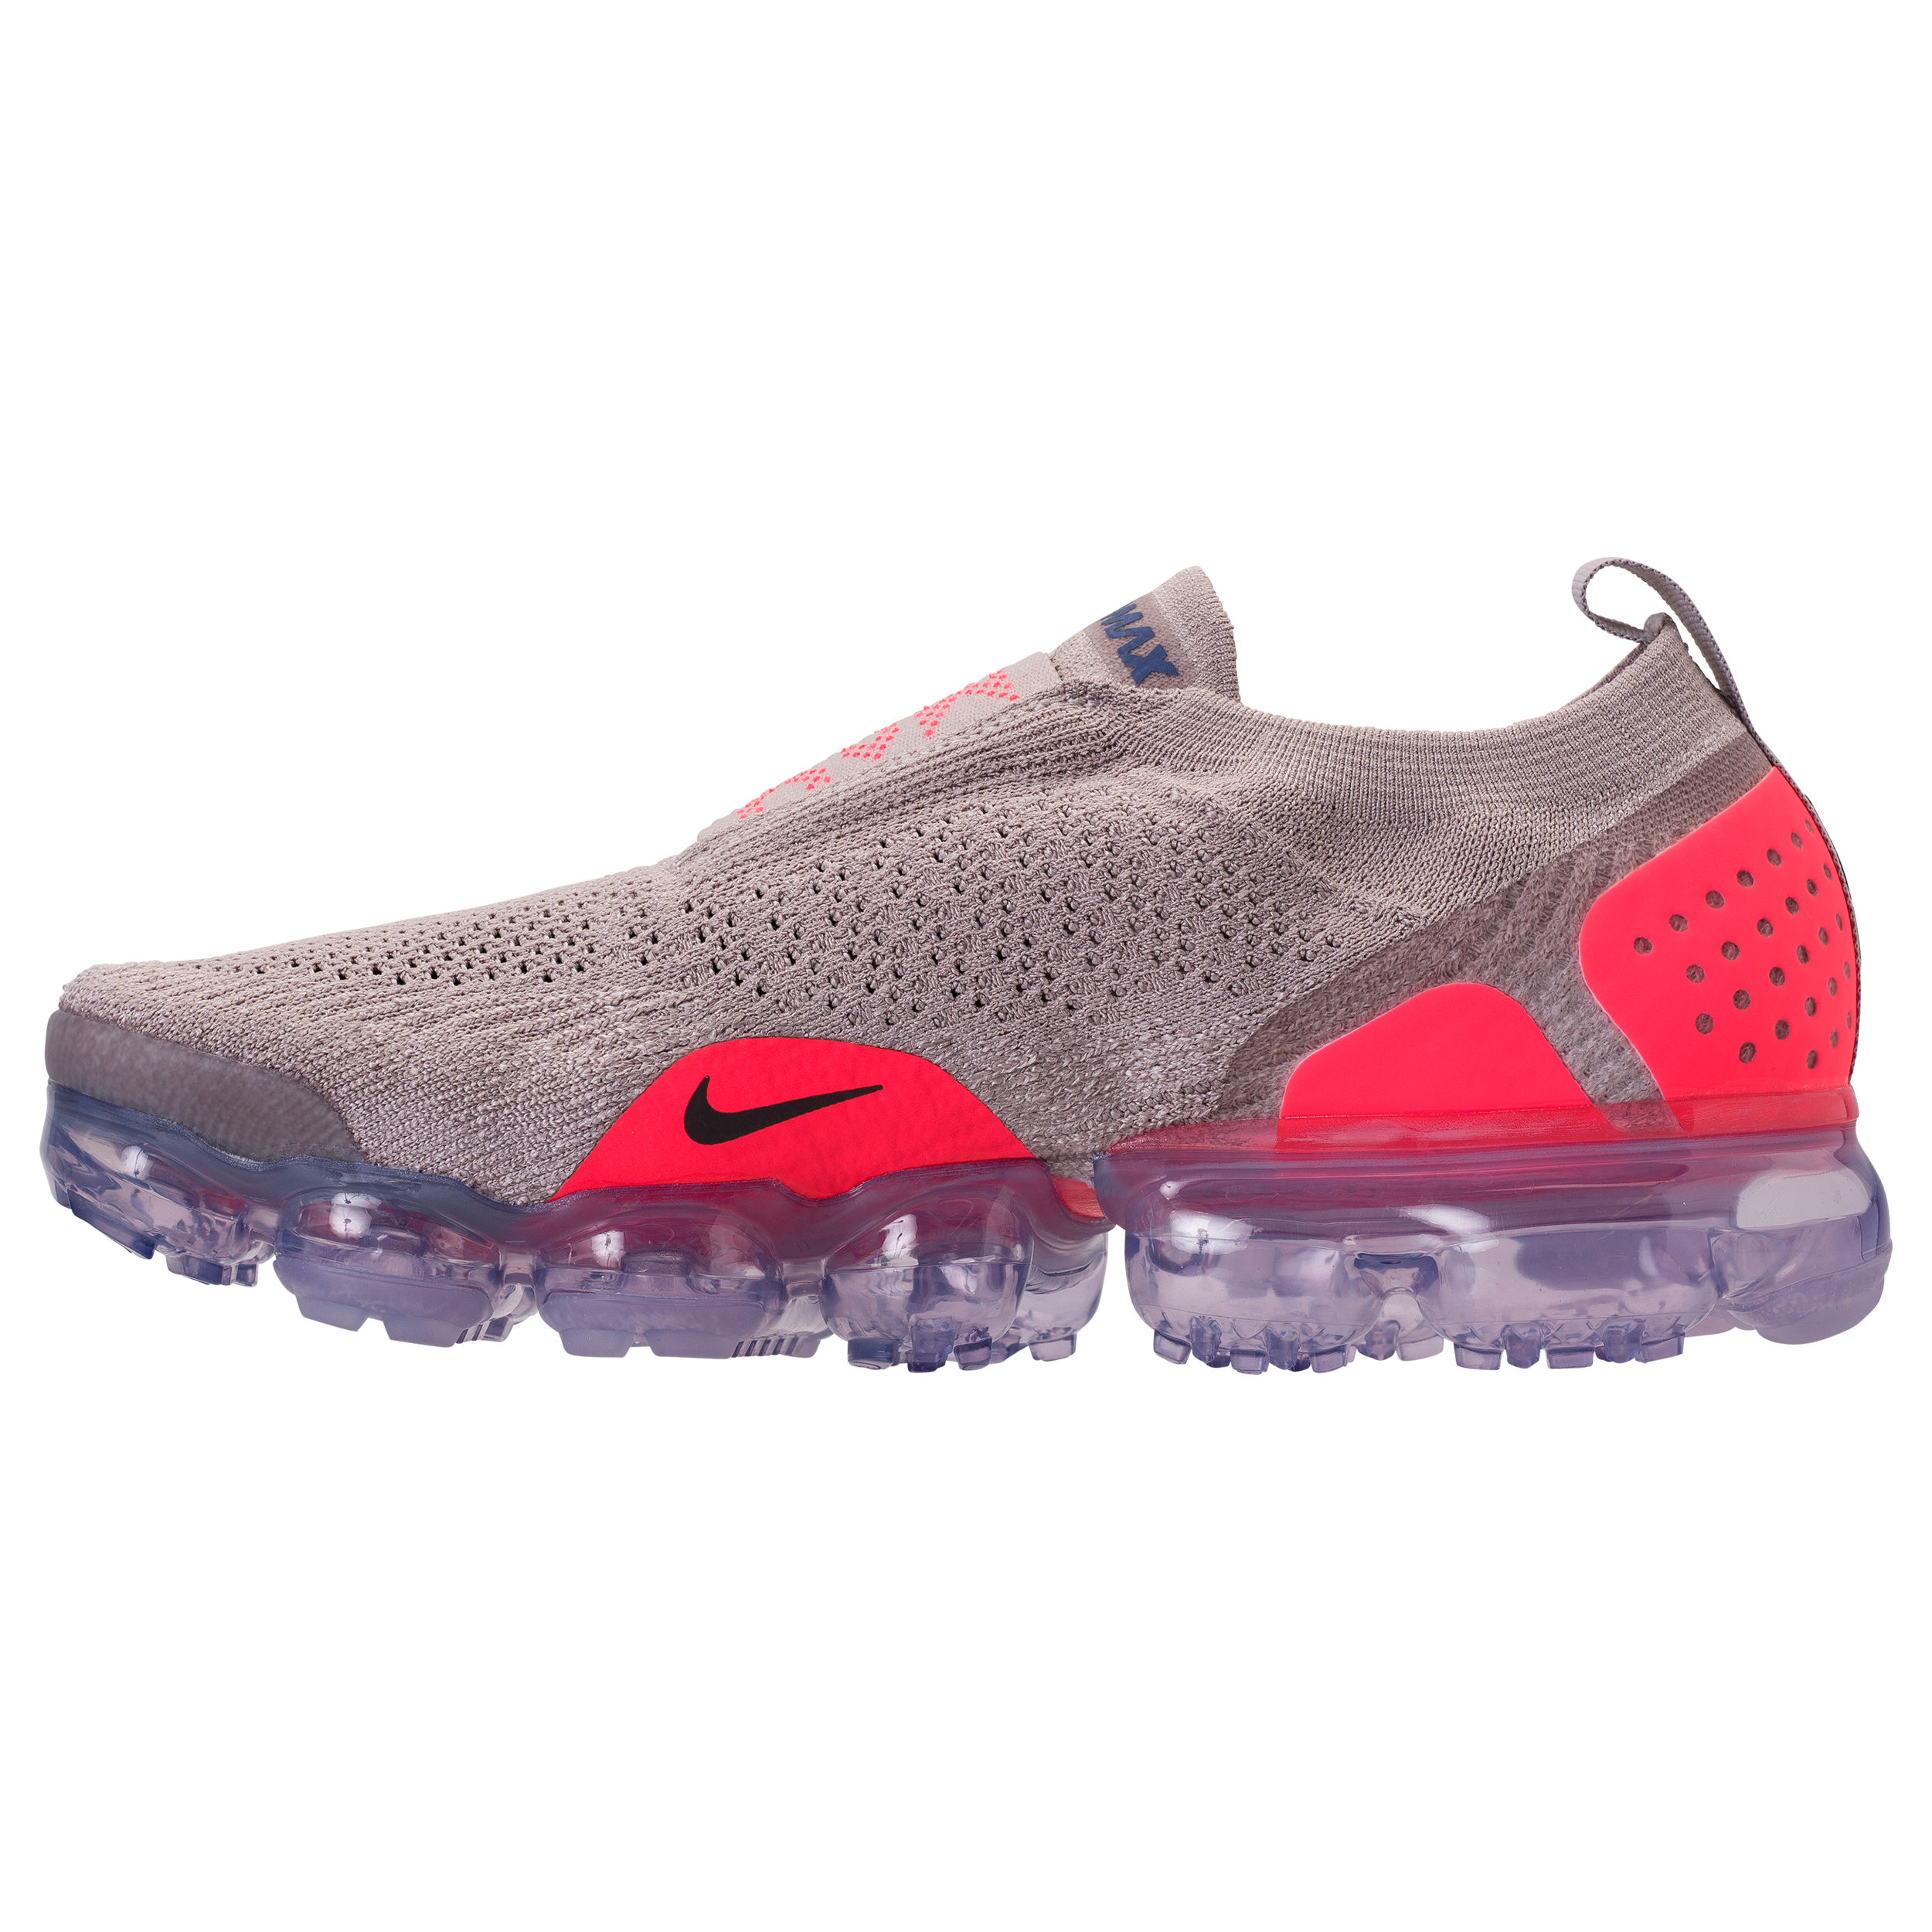 nike air vapormax flyknit moc 2 moon particle 2